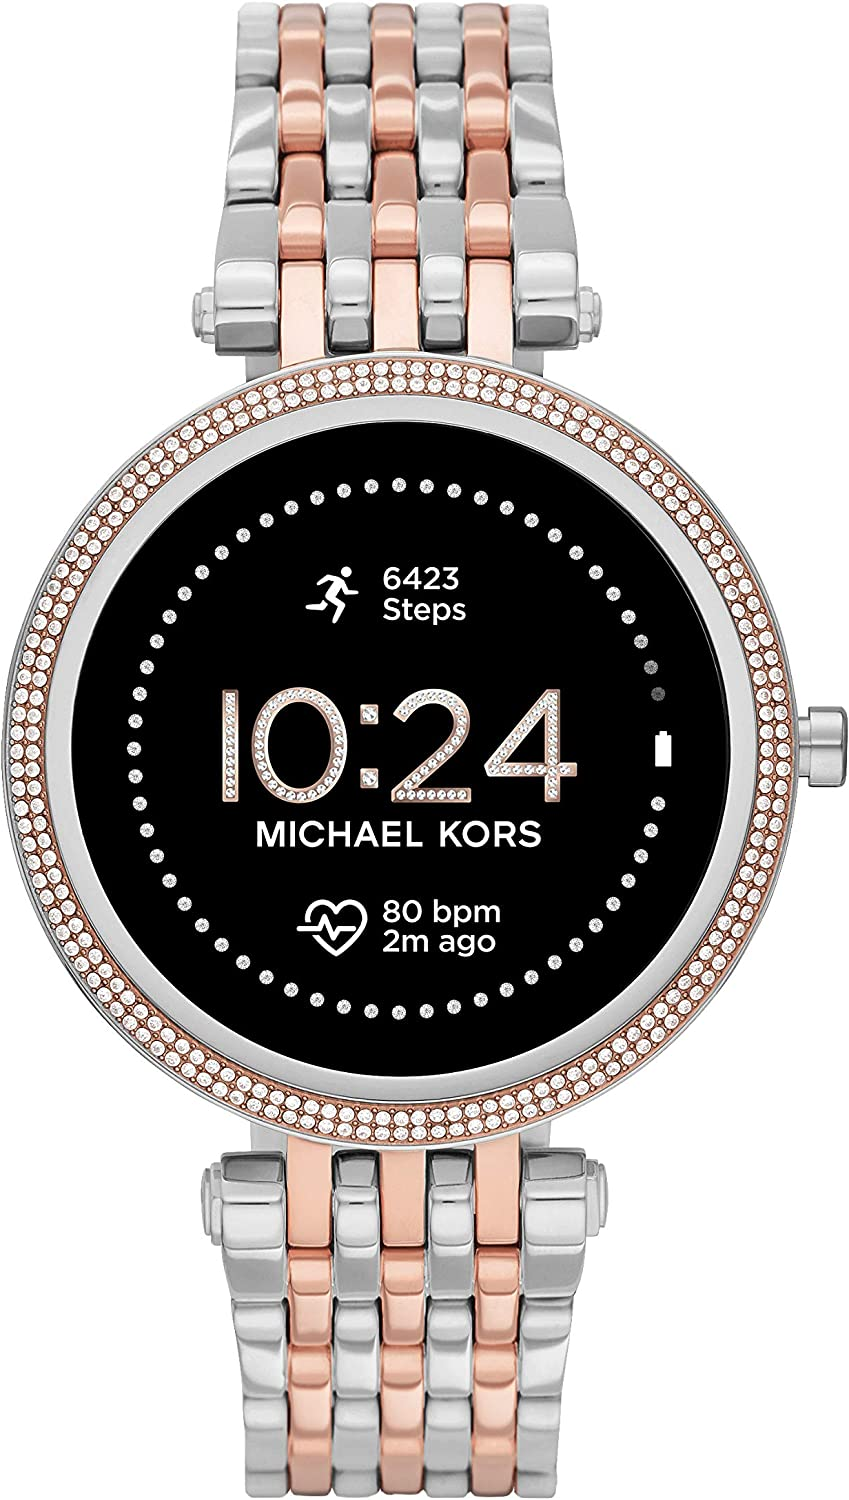 Michael Kors Women's Gen 5E 43mm Stainless Steel Touchscreen Smartwatch with Fitness Tracker, Heart Rate, Contactless Payments, and Smartphone Notifications.